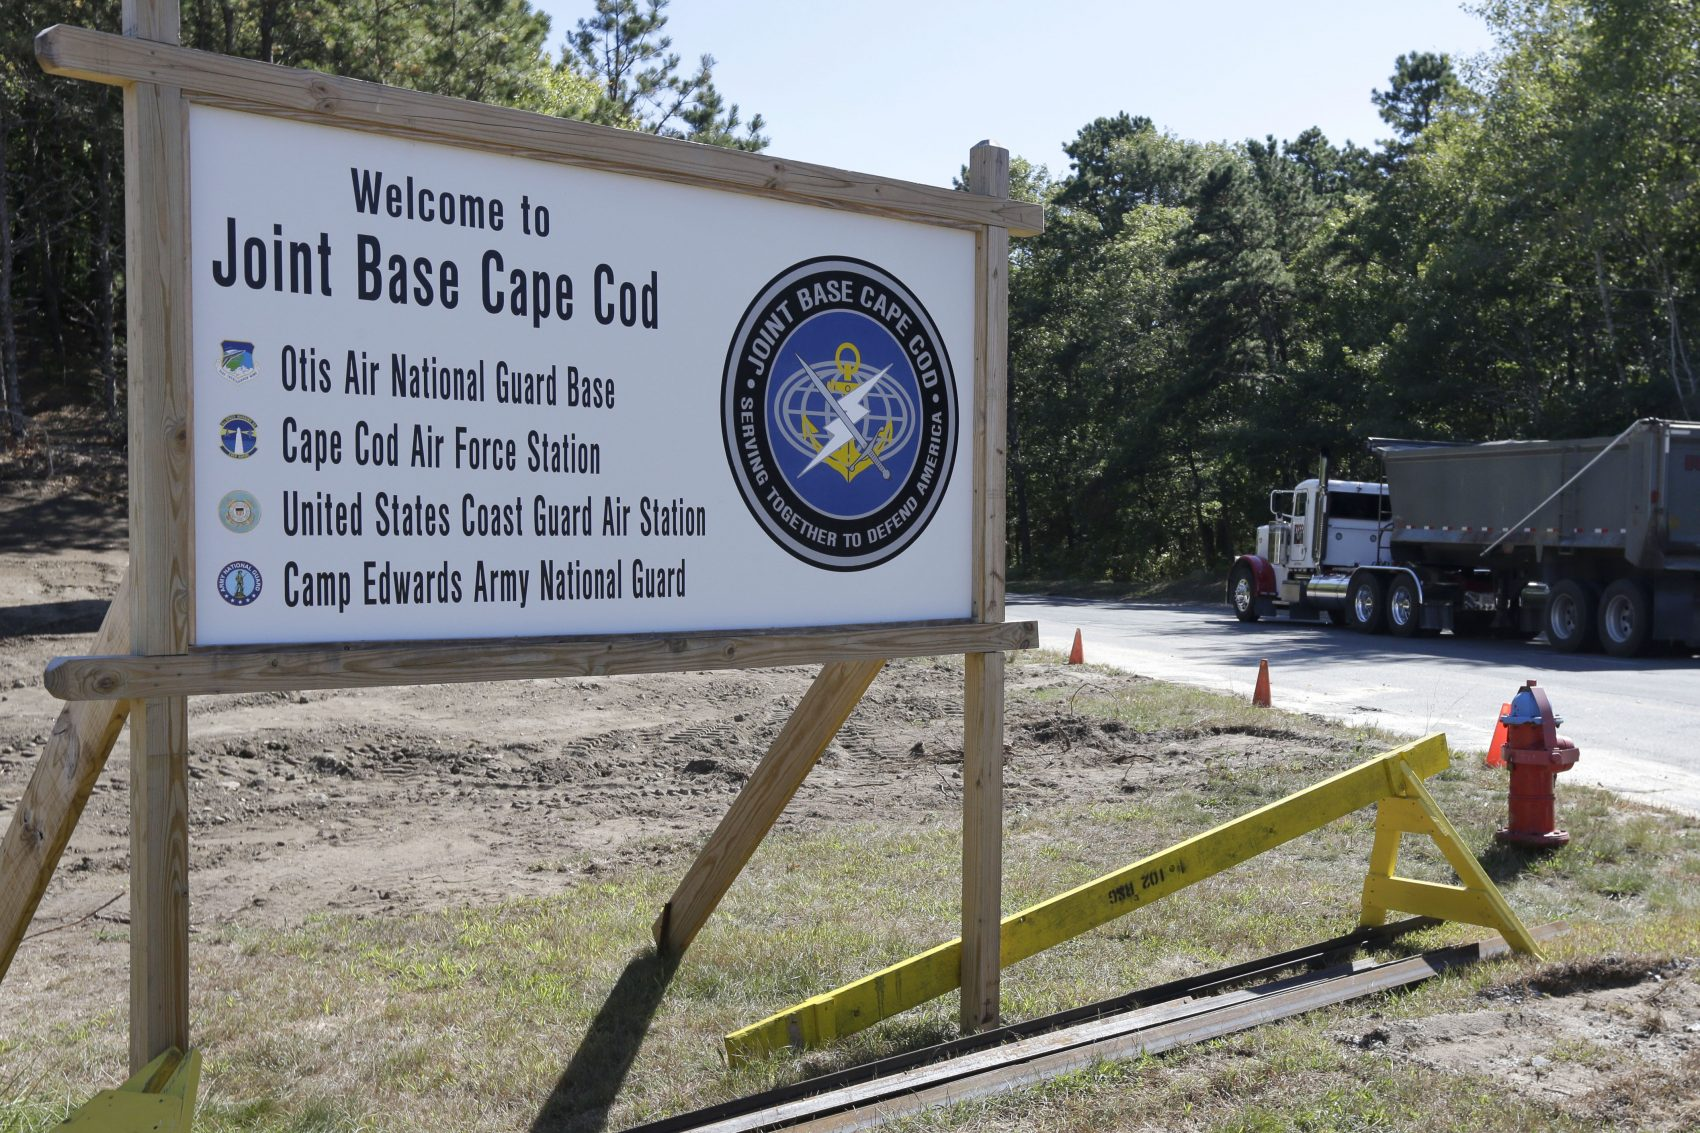 Joint Base Cape Cod, seen here in this 2014 file photo, will have the military's first renewable energy microgrid. (Steven Senne/AP)